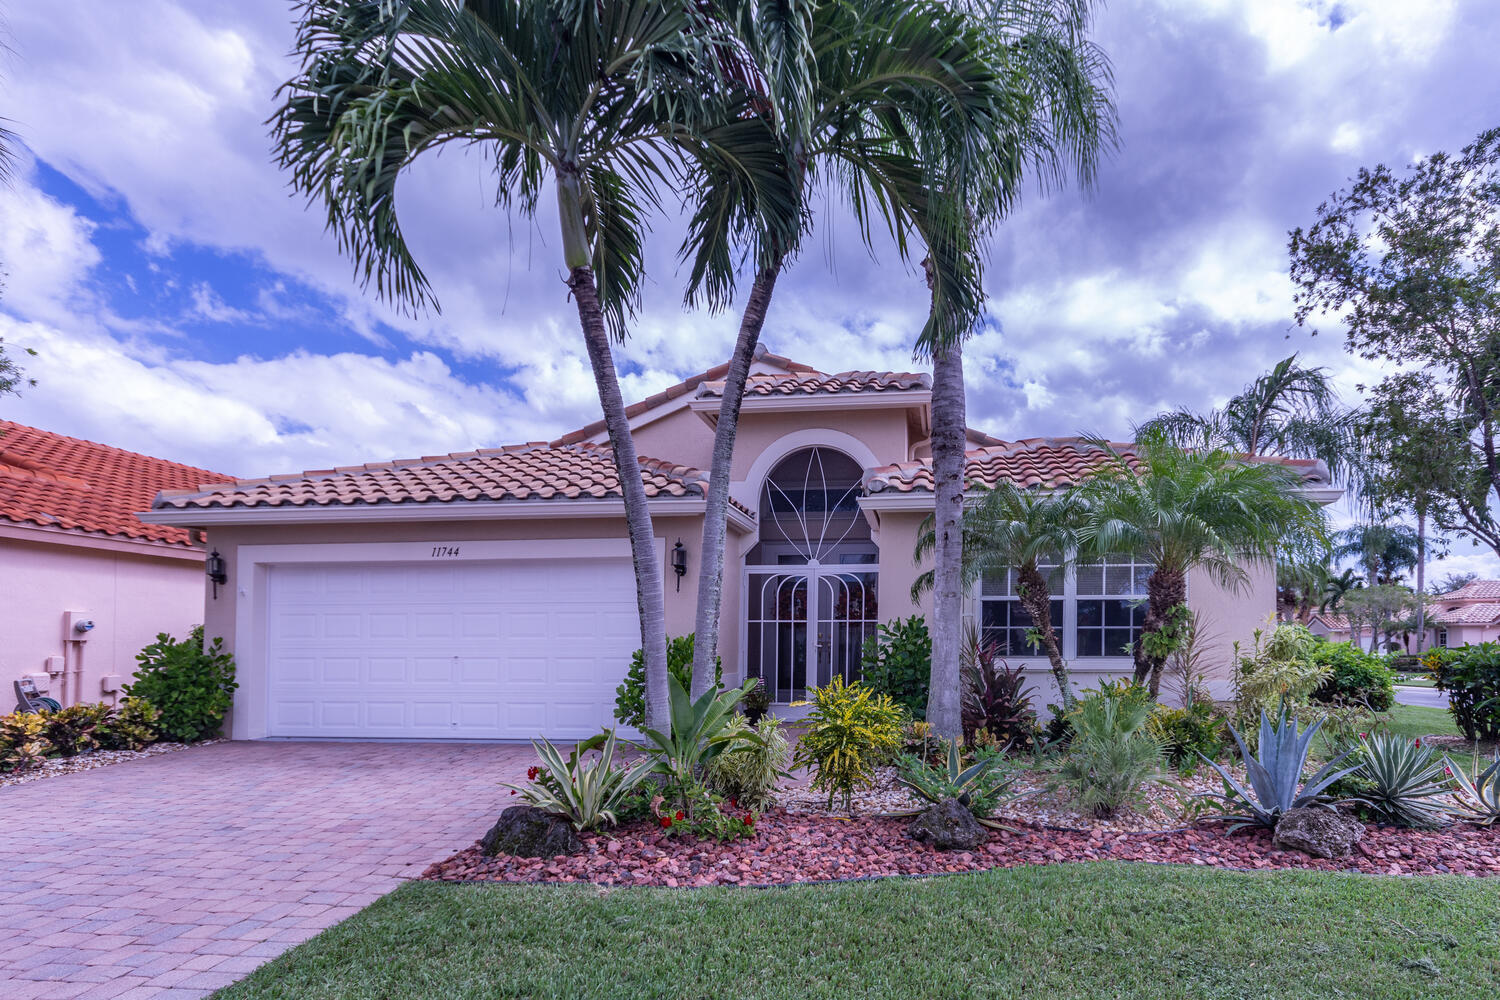 Photo of 11744 Derbyshire Lane, Boynton Beach, FL 33437